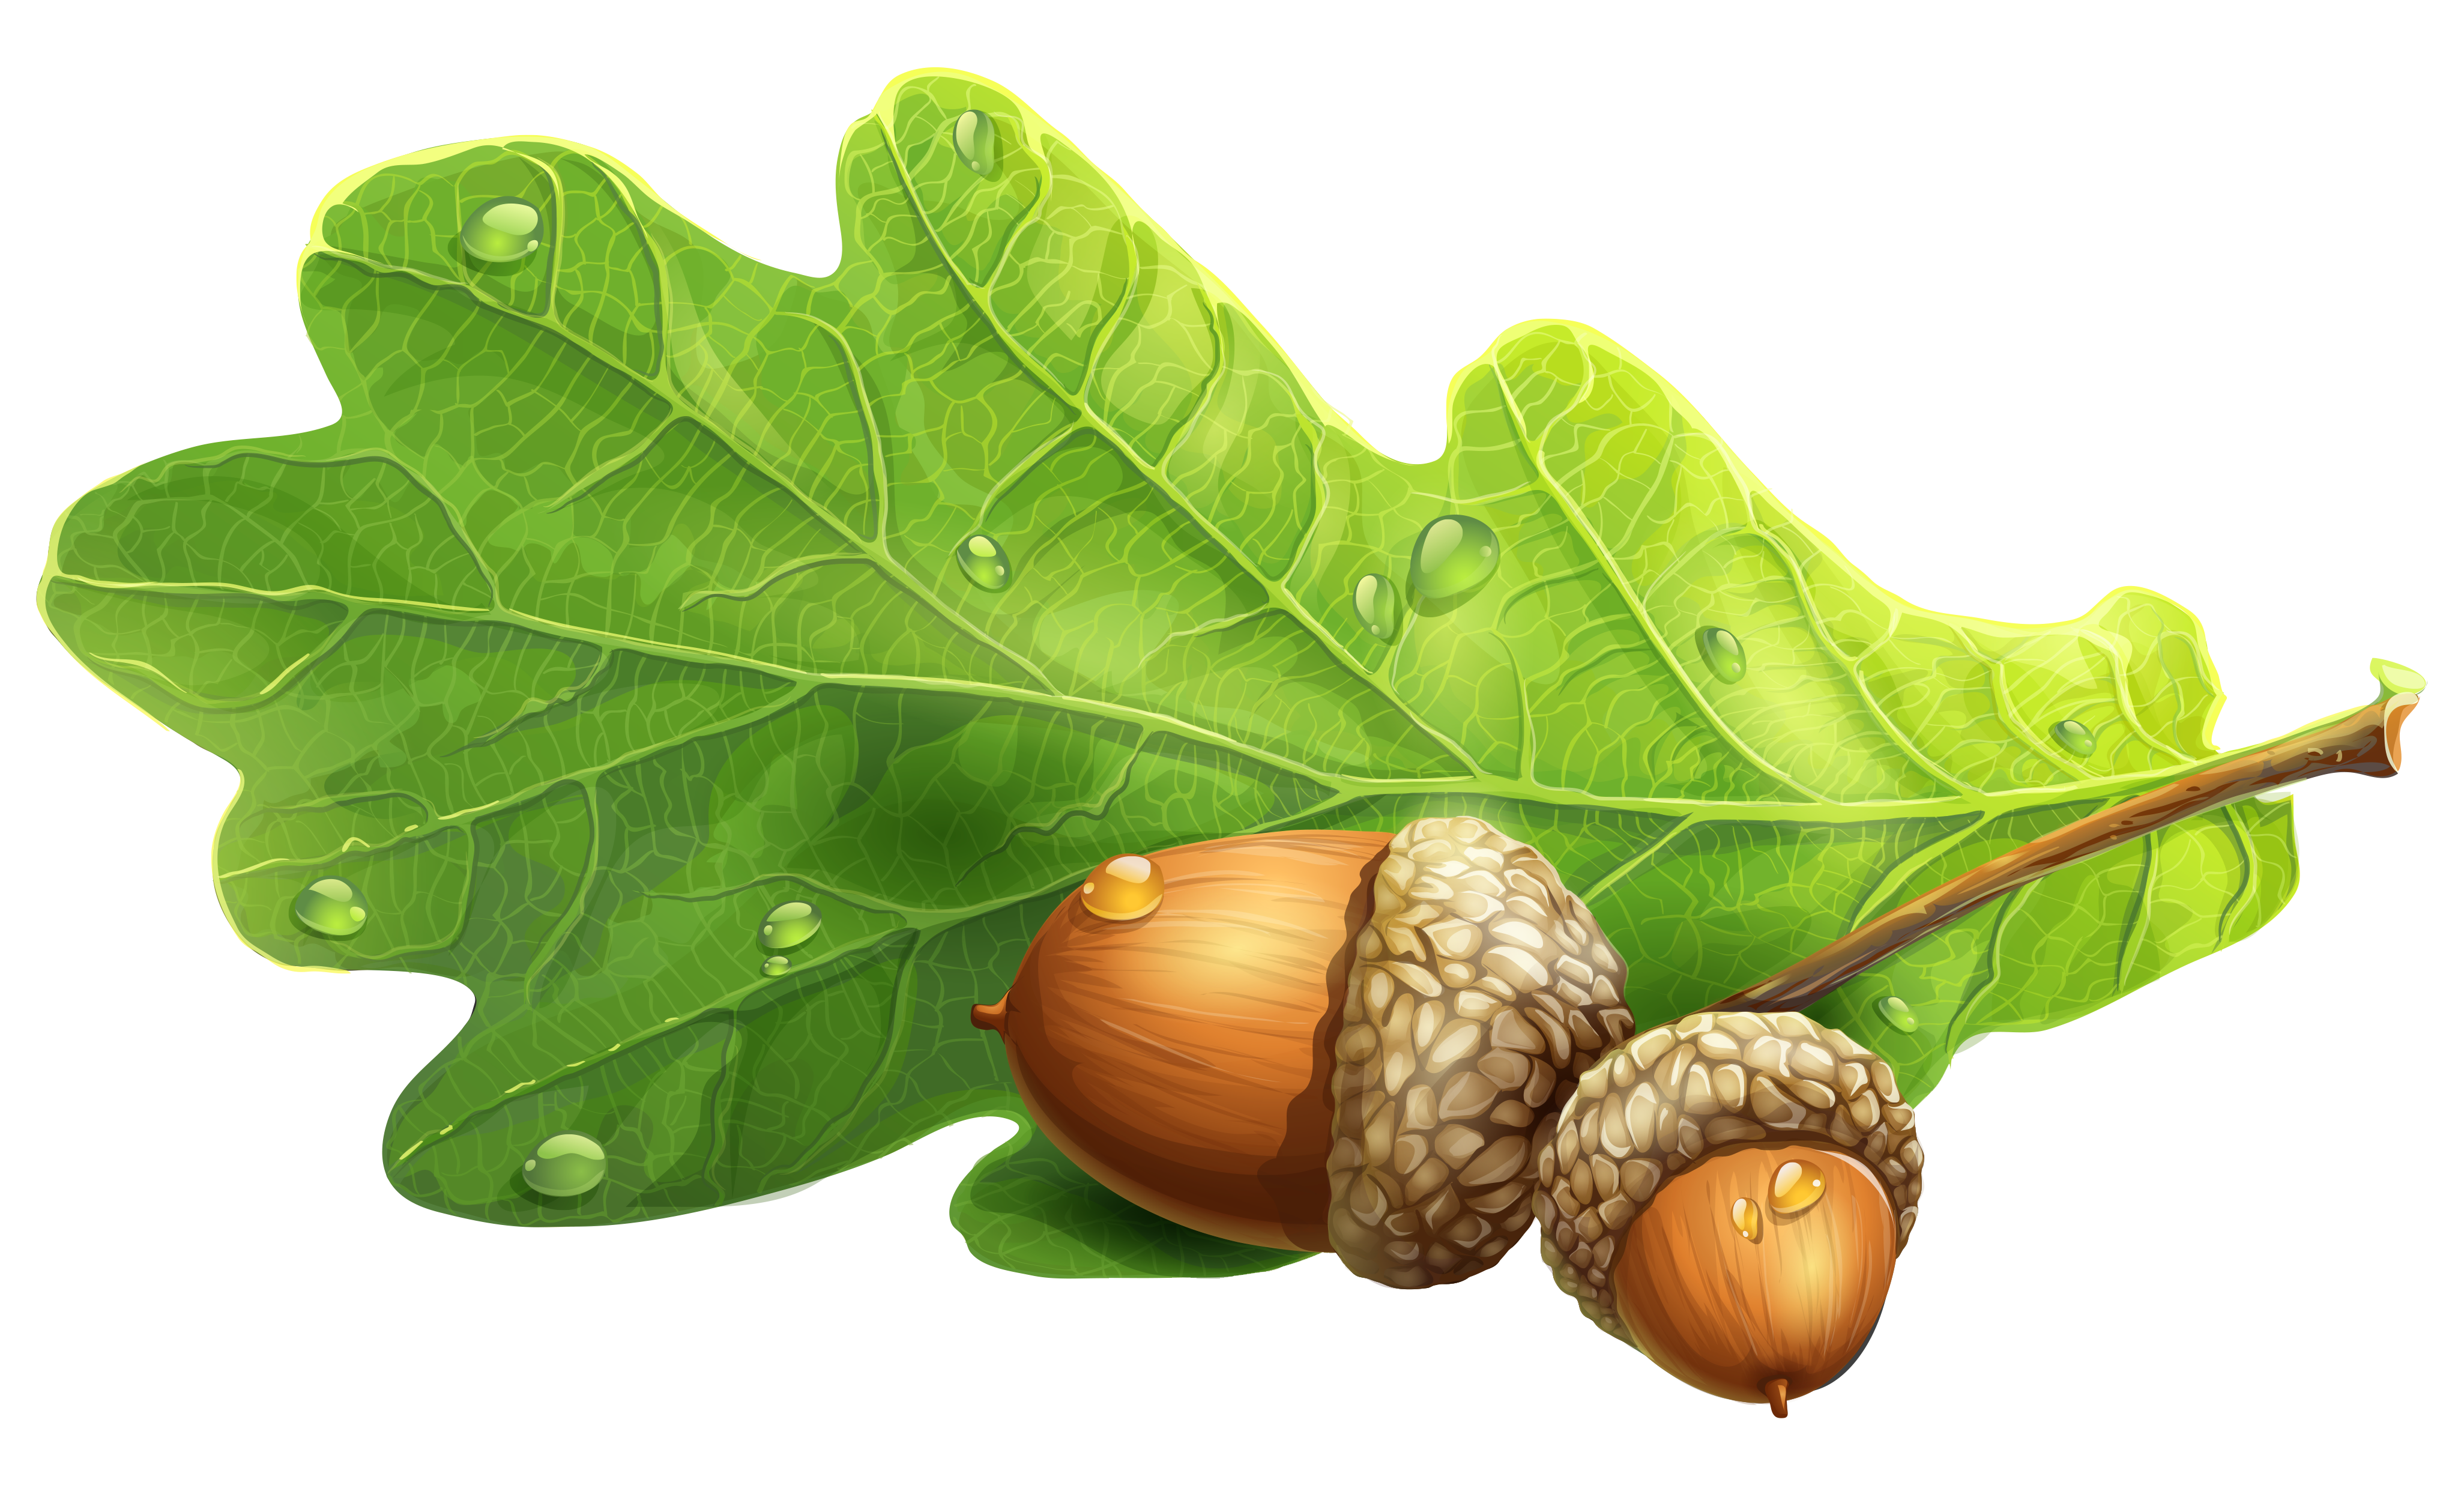 graphic free stock Free on dumielauxepices net. Acorn clipart painting.